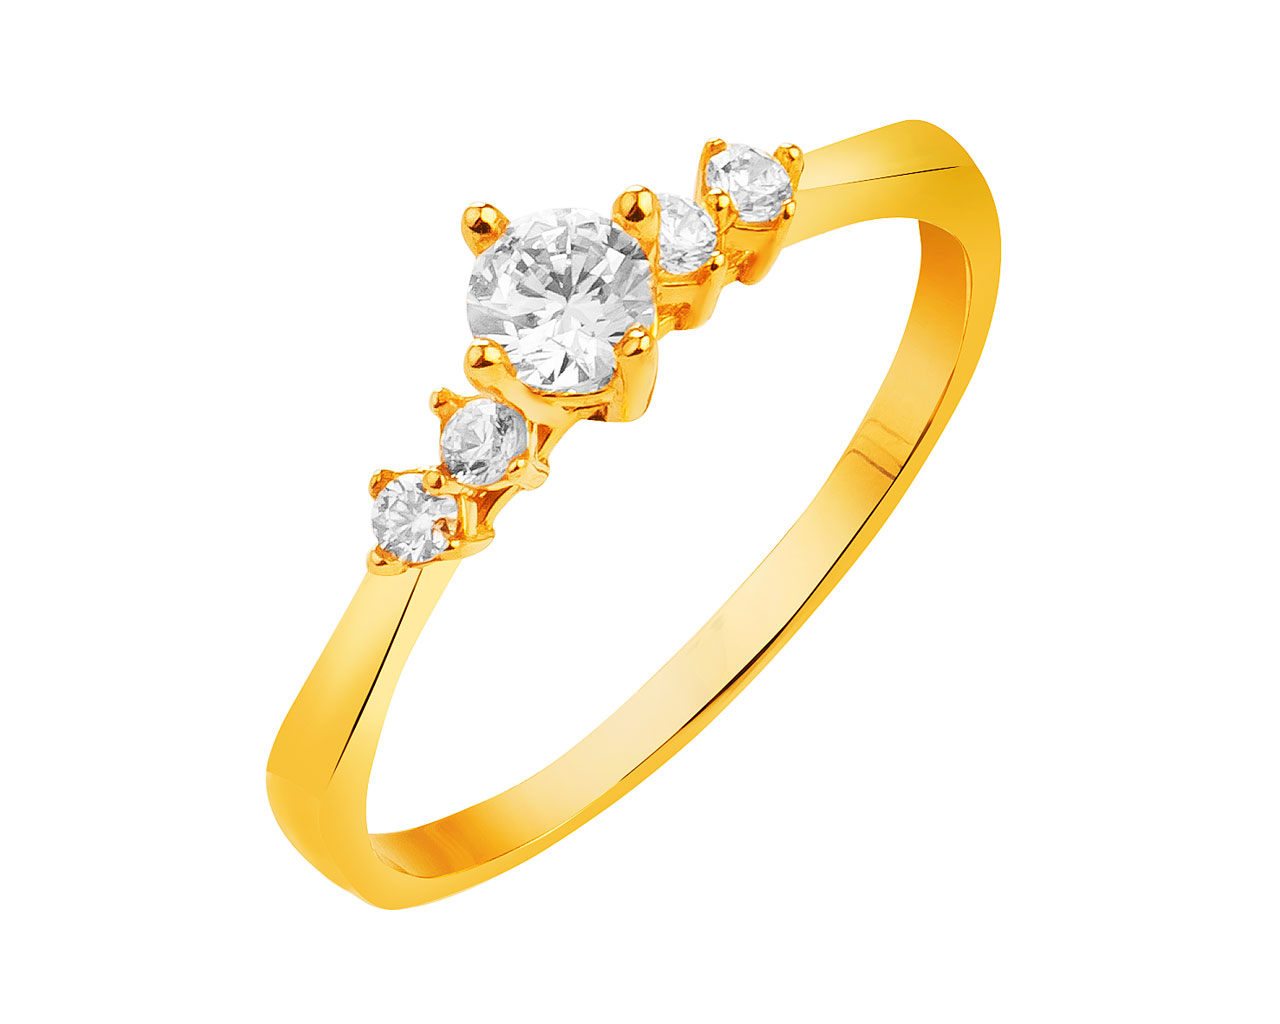 With 8ct Zirconia Gold Ring Cubic Yellow qMGVzLSUp